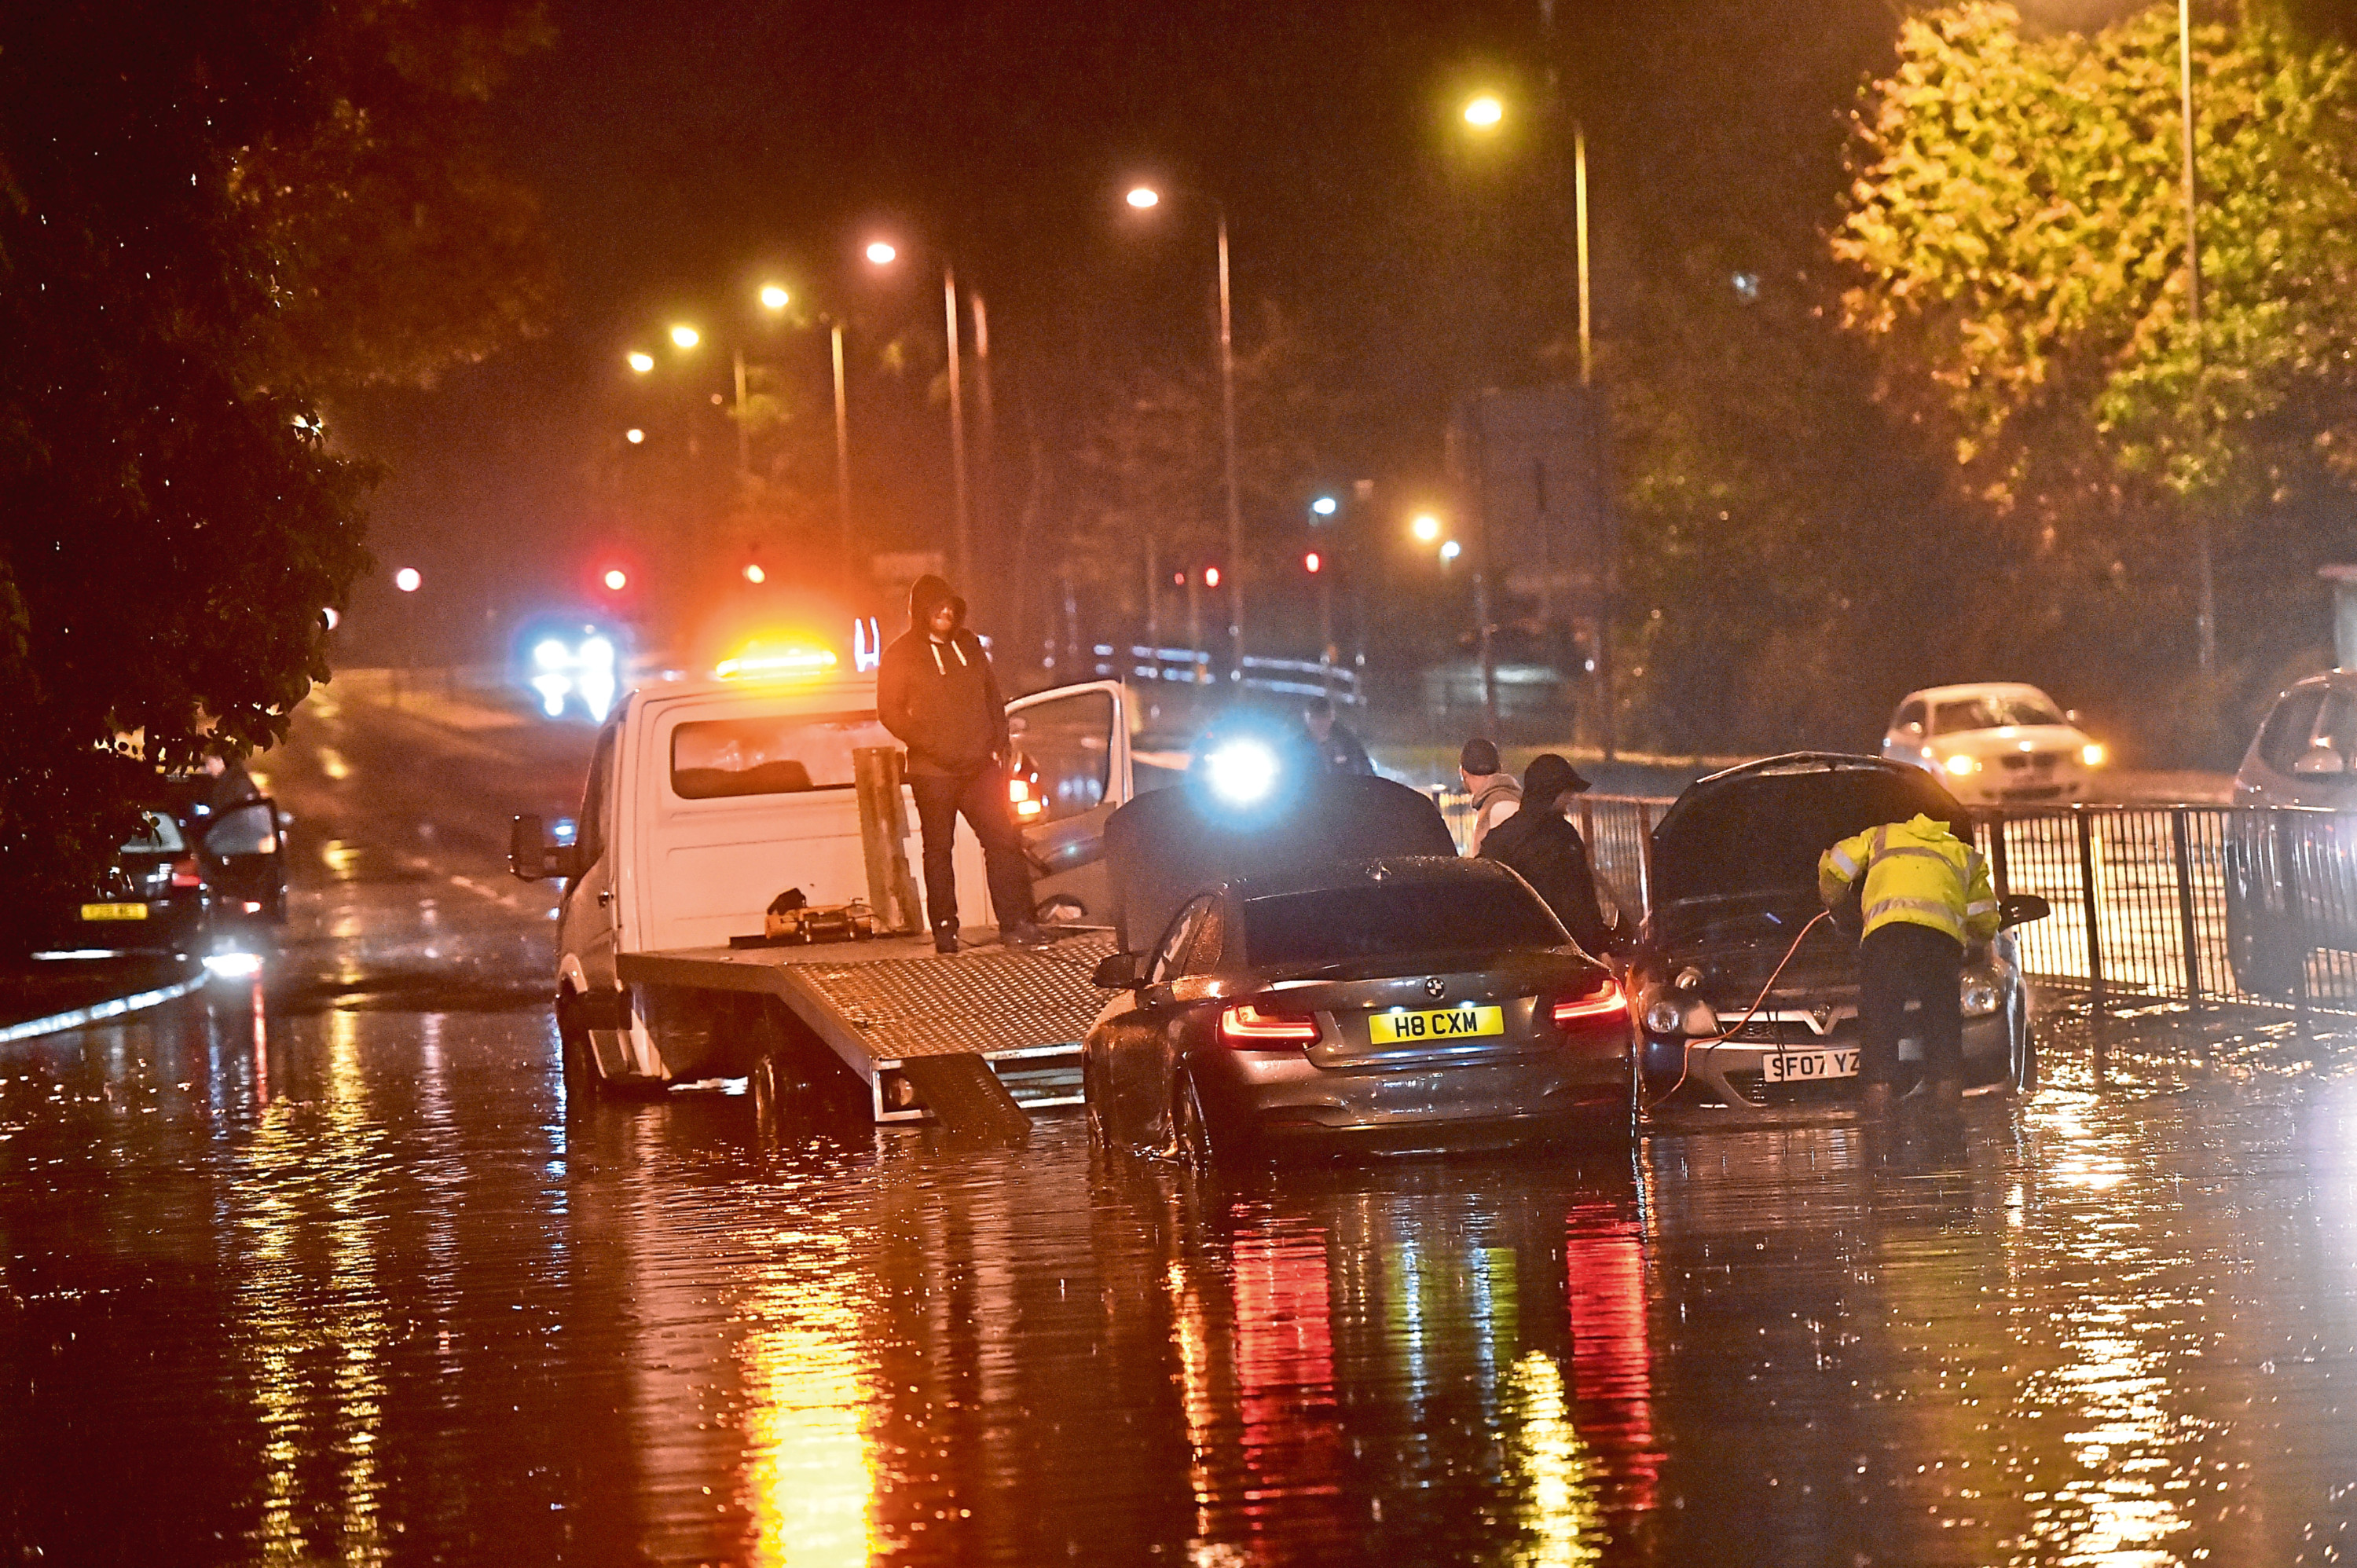 Cars being recovered from flash flooding on North Anderson Drive. Picture by Scott Baxter